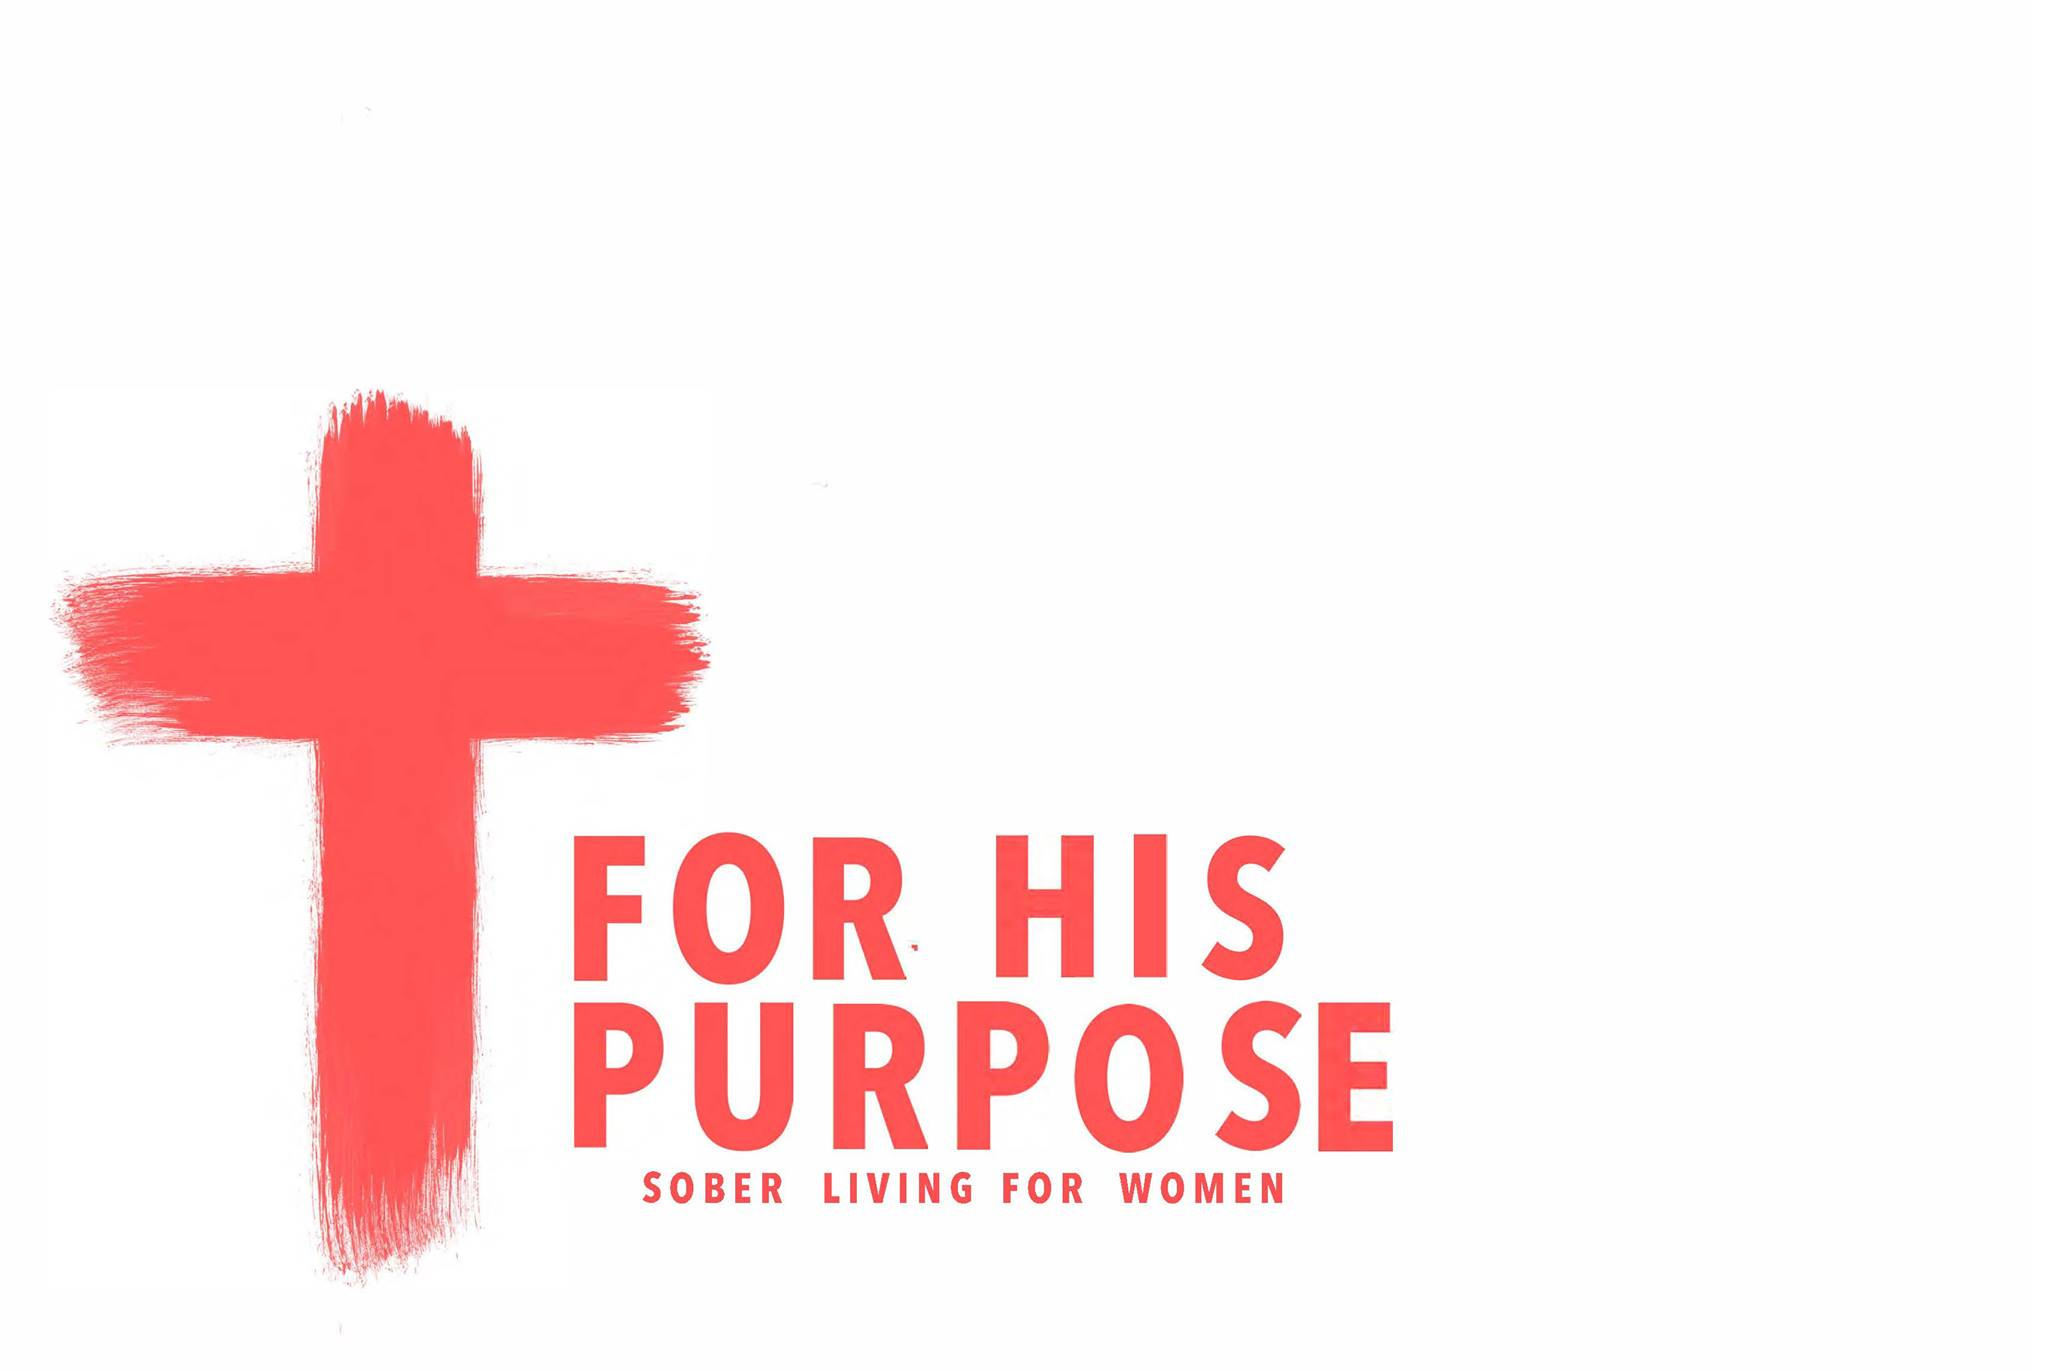 For His Purpose